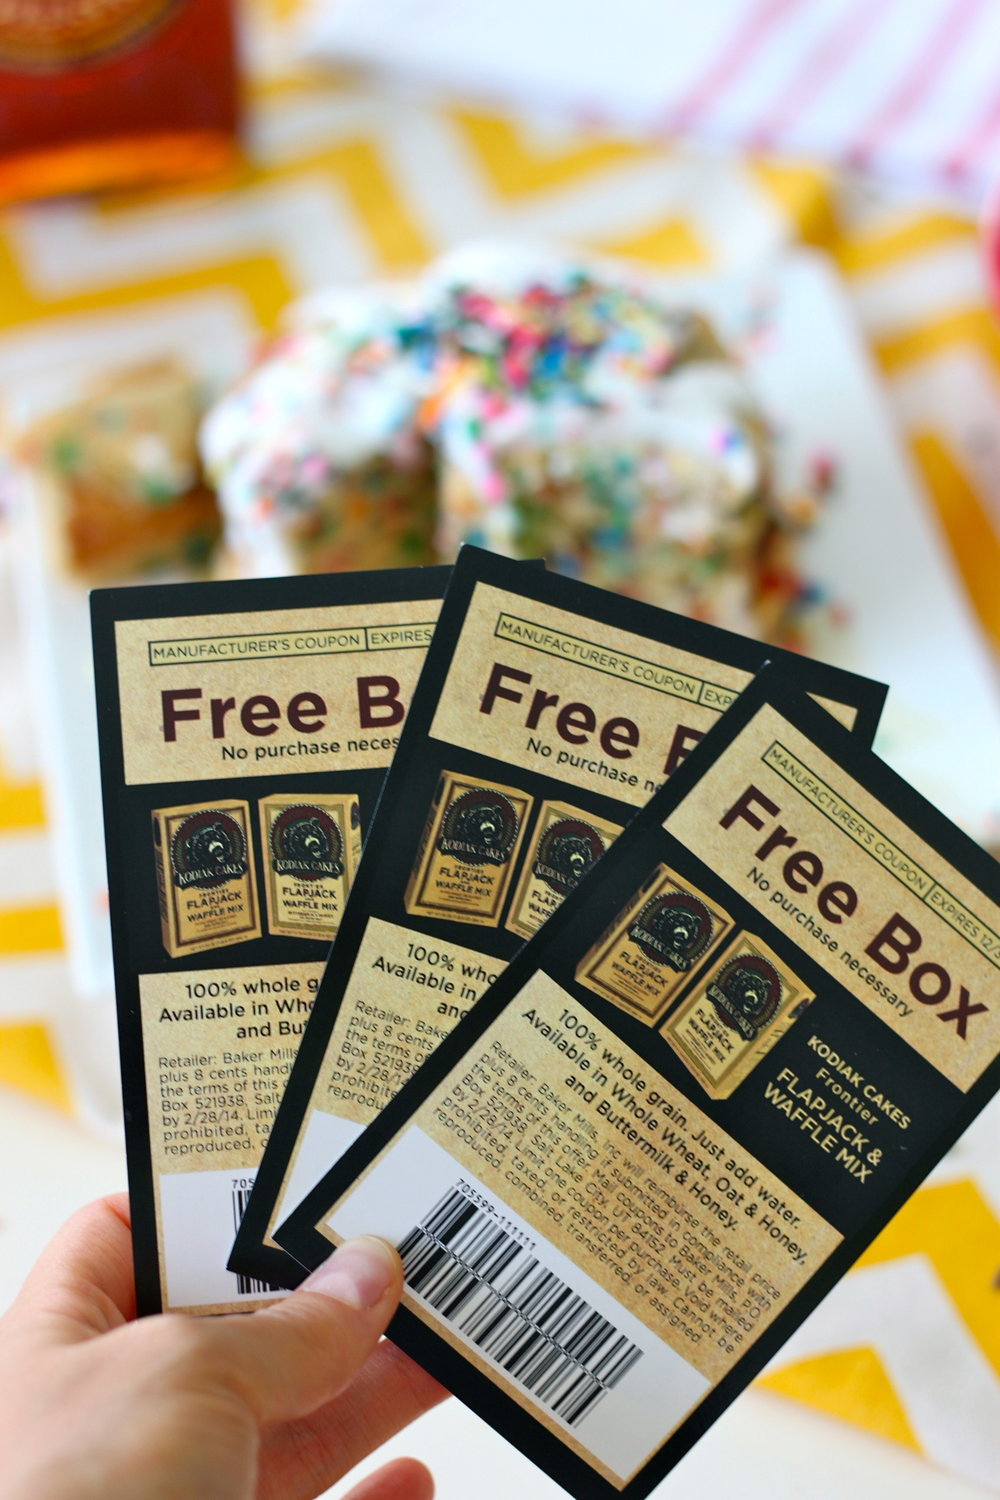 Free Box of Pancakes